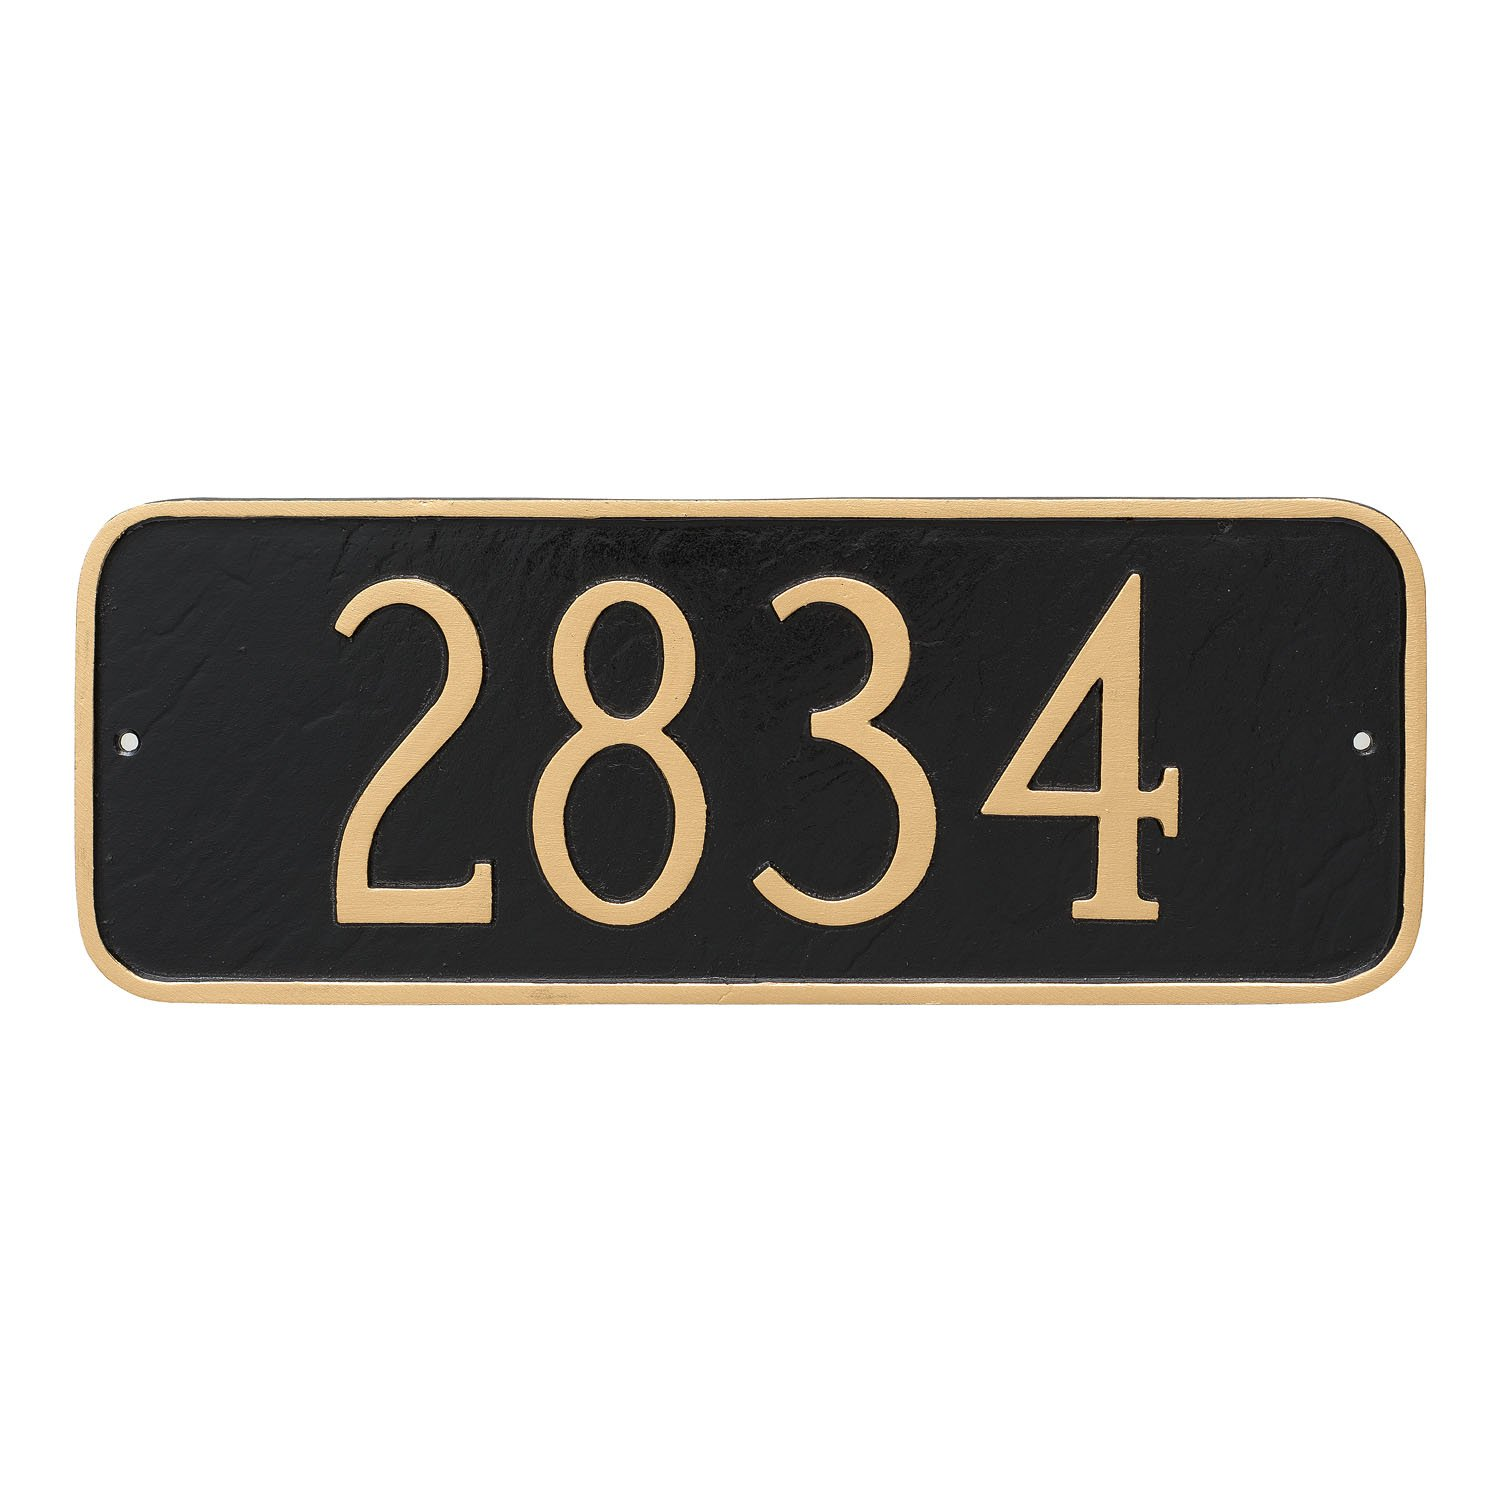 Montague Metal Rectangle Address Plaque Sign, 6'' x 15.75'', Aged Bronze/Gold